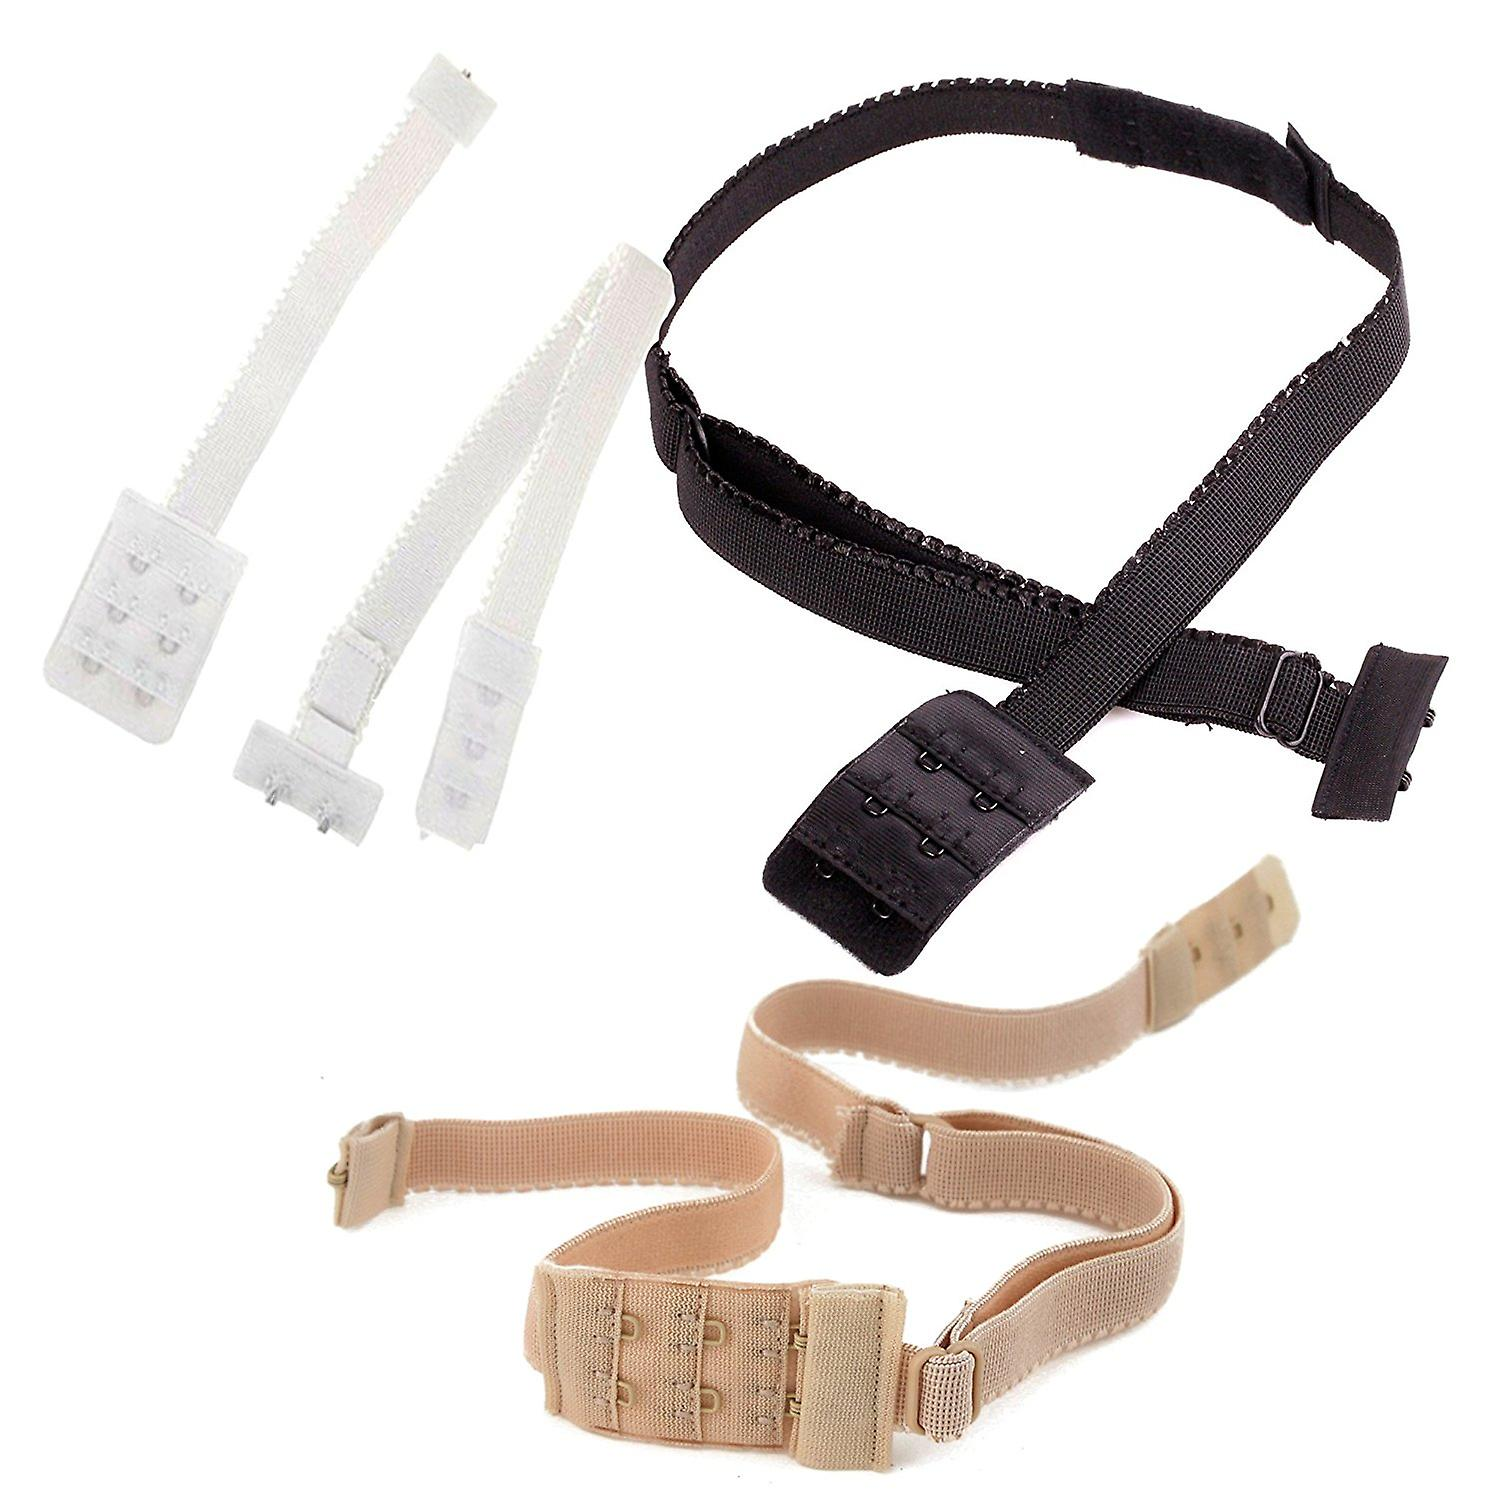 BACKLESS LOW BACK BRA STRAP CONVERTER EXTENDER - Choose your colour WHITE - BLAC